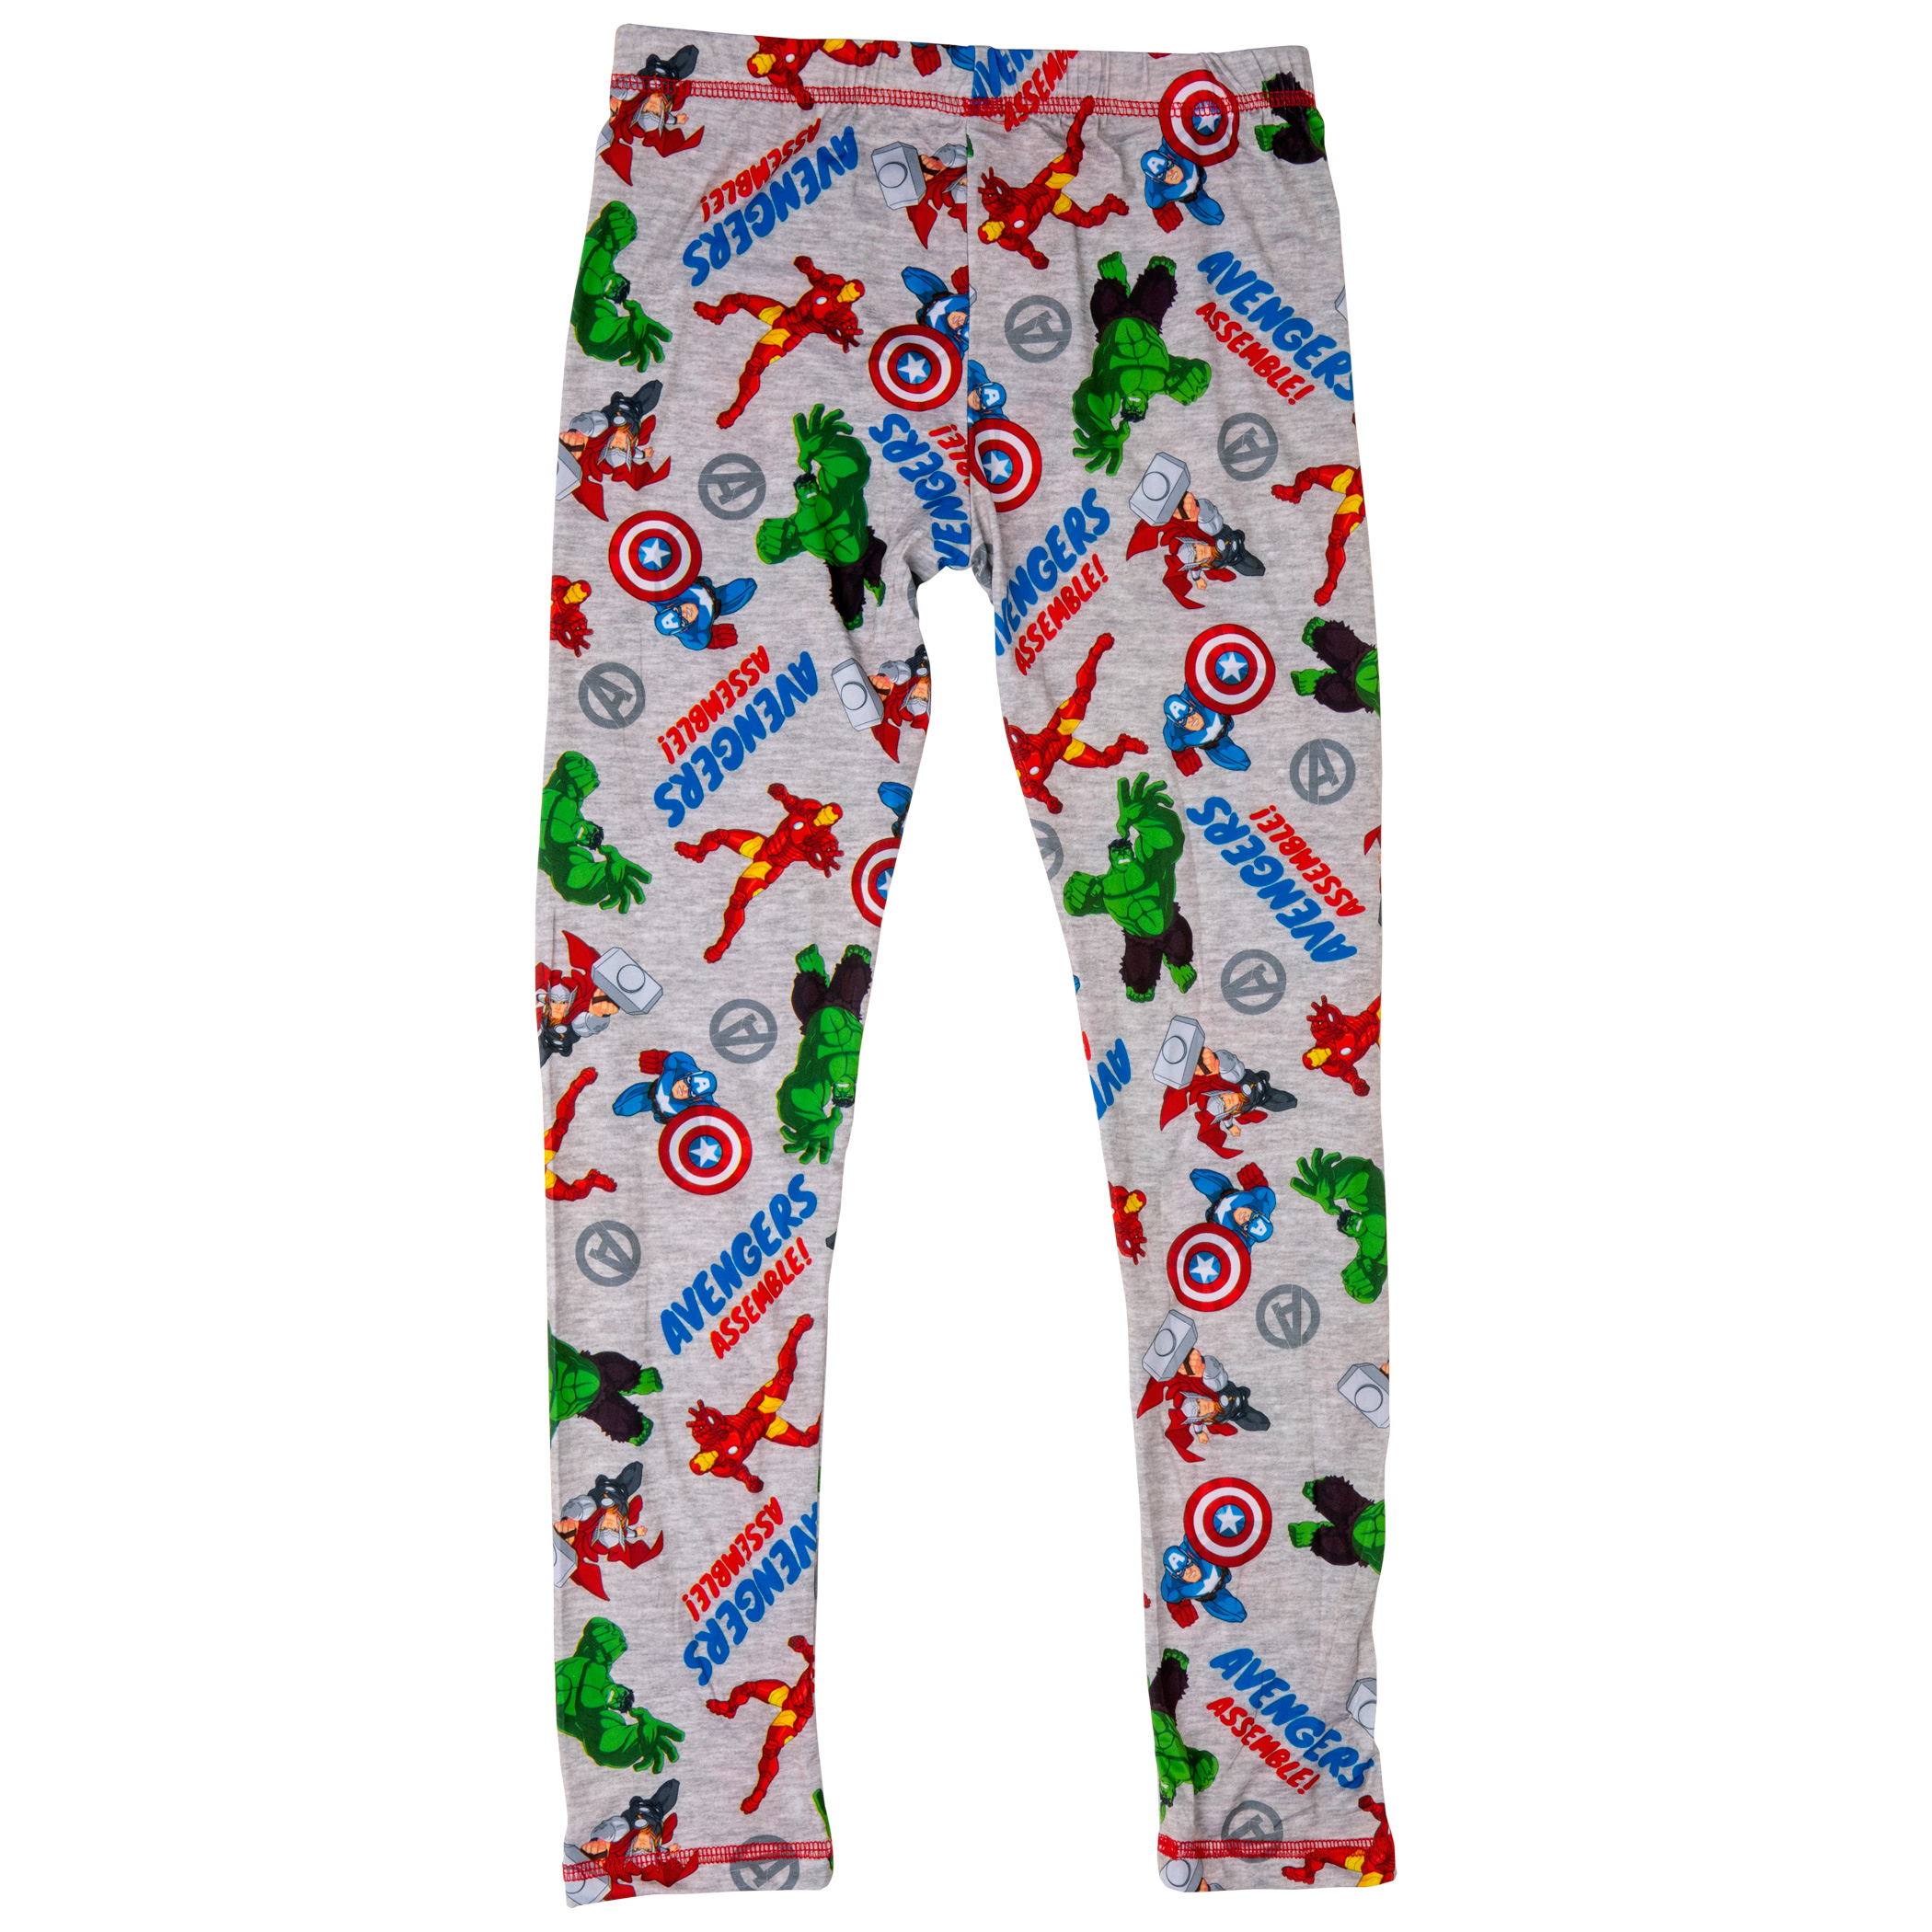 Avengers Characters All Over Print 2-Piece Youth Grey Pajama Set